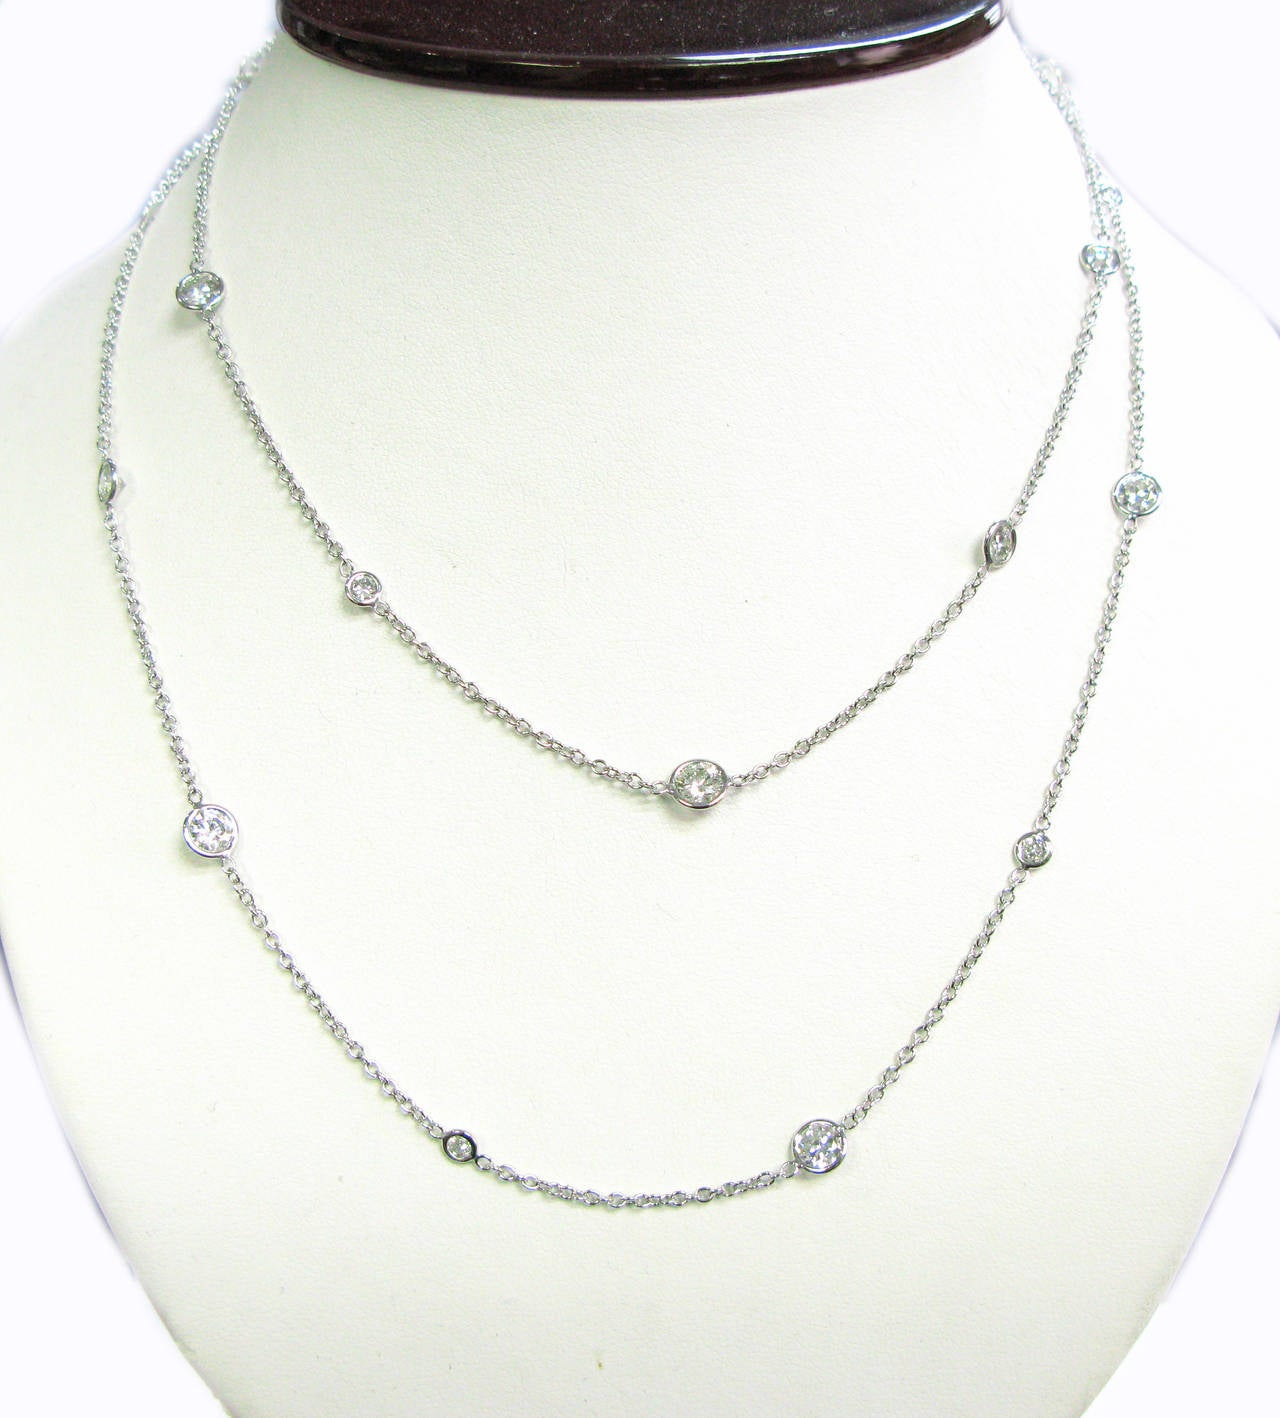 This sensational 14kt white gold handmade necklace features bezel set round brilliant diamonds of varying sizes spaced along an open link chain. There are 21 diamonds with a combined weight of 7.76cts. The necklace is 36